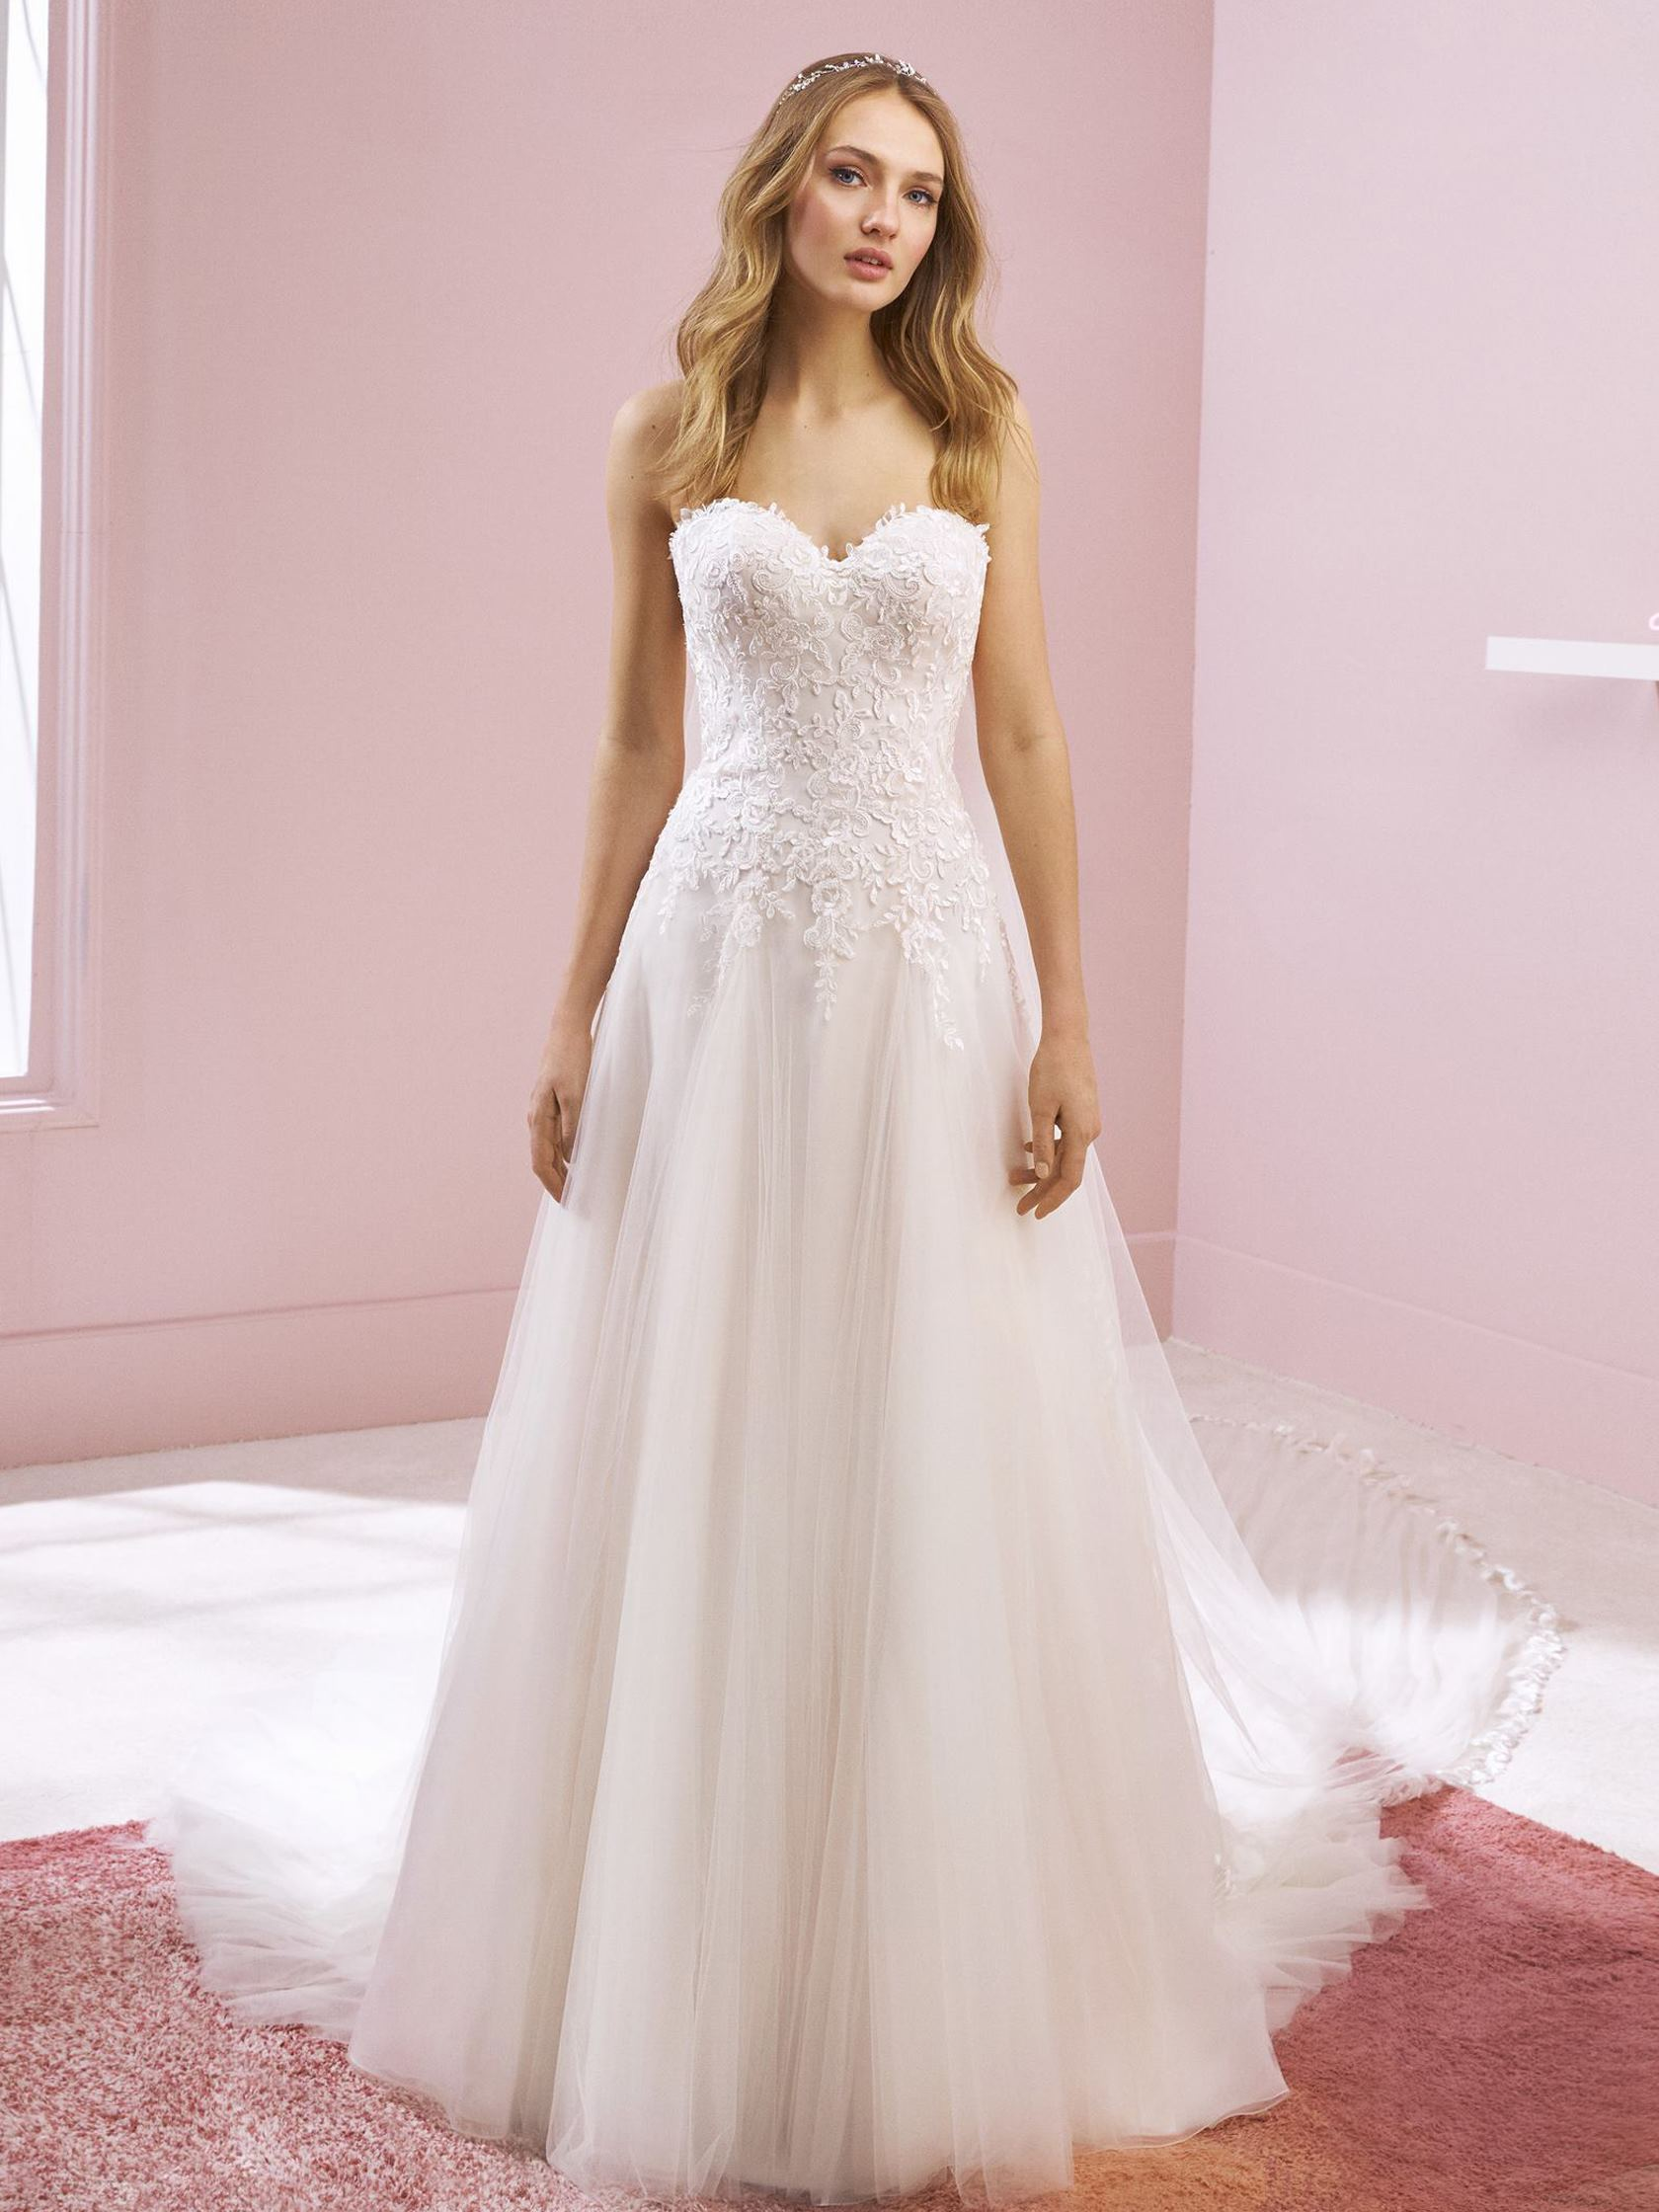 Vestiti Da Sposa White One.Abito Sposa White One Kelsey White One 2020 Temptation S Gallery